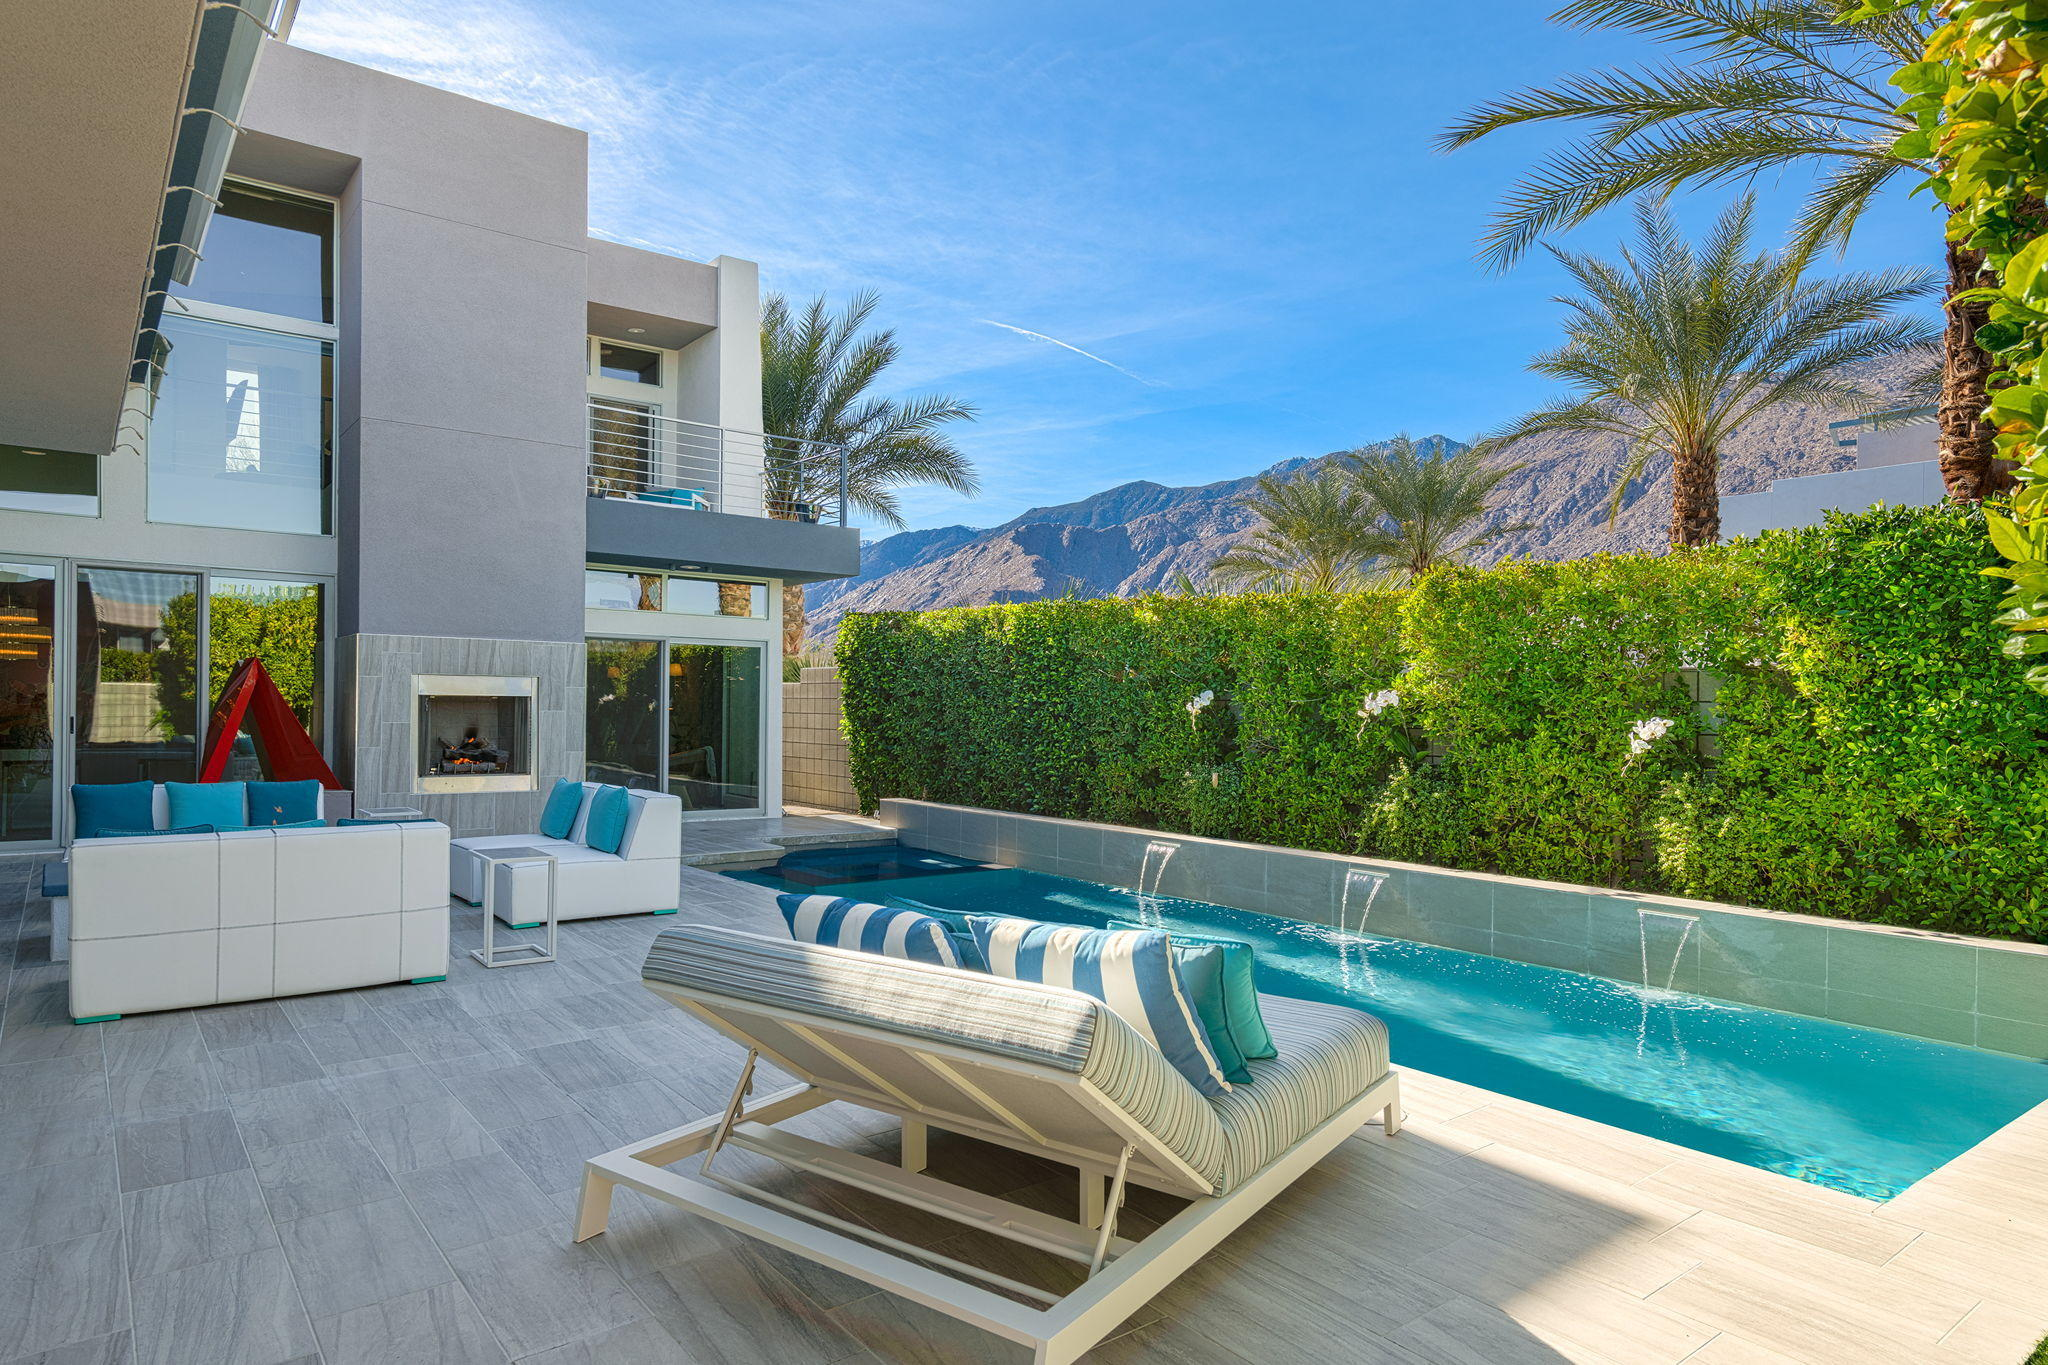 Welcome to what could be James Bond's secret hideaway! In the heart of Palm Springs at SOL, this custom floor plan was blown up and expanded wherever possible.  From the Savant® smart system to the owned solar with battery backup this property is highly intelligent as well as efficient.   With custom details throughout, this home is extra in every way imaginable including high-end appliances in the kitchen, an air-conditioned garage, laundry in the master closet and whole house misting system.  Enjoy the sweeping unobstructed views of Palm Springs from the custom rooftop deck with fire pit, wet bar and powder room for the ultimate in entertaining. Incredible flex space on 2nd floor to be what you need as an office, leisure or workout area.  Make this ultimate SOL home your own personal getaway today.